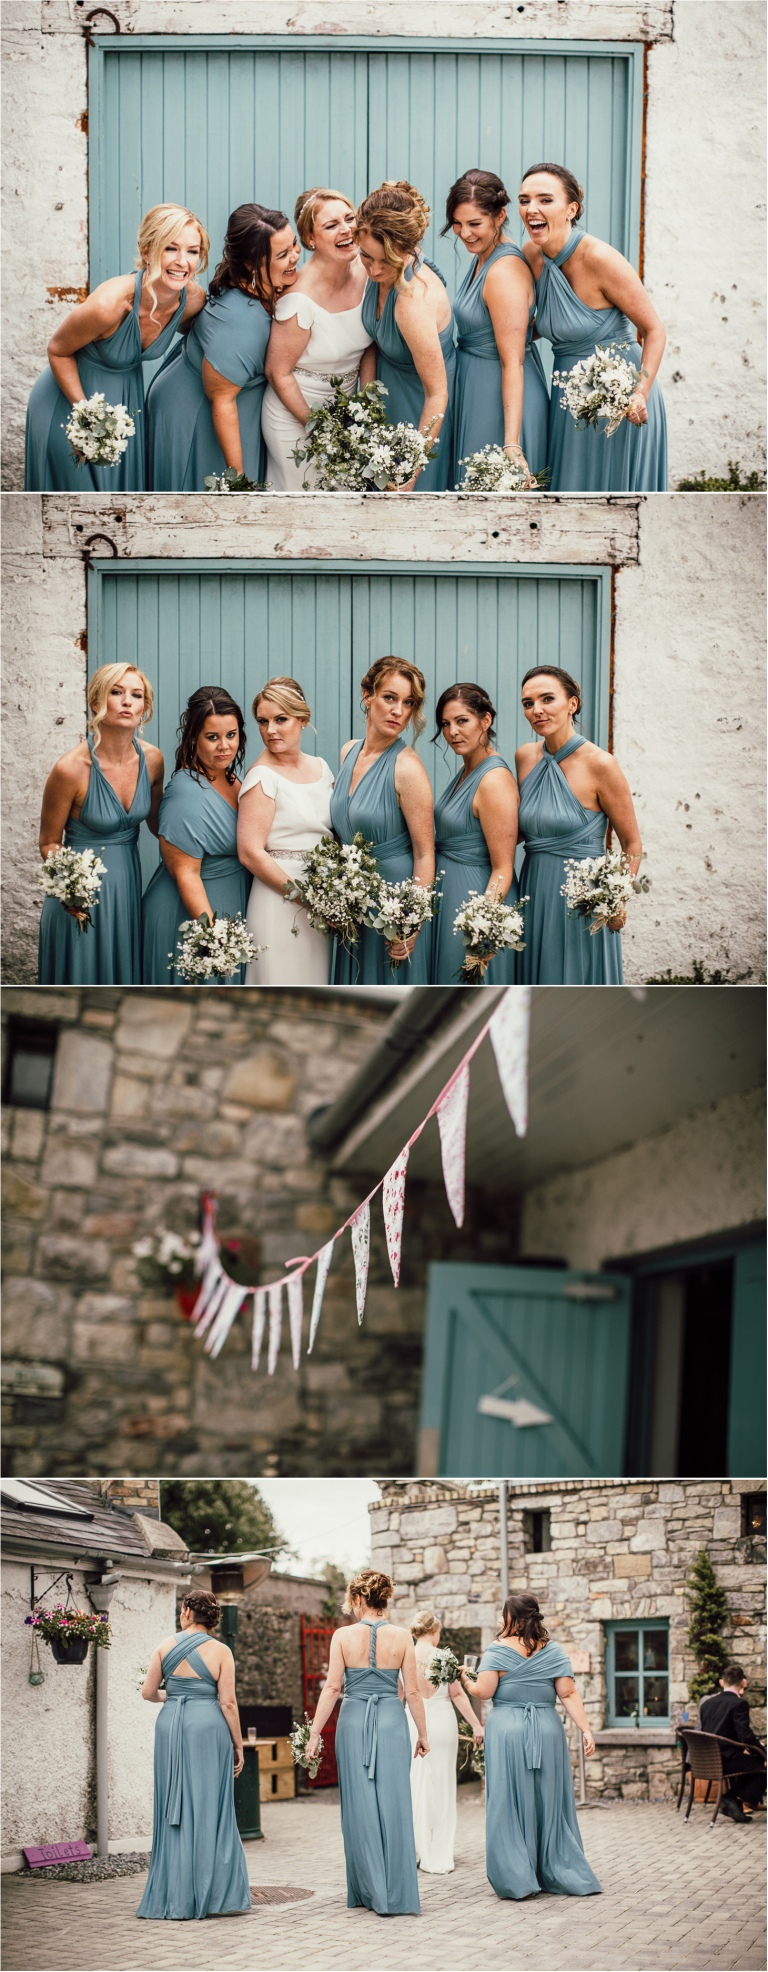 darren fitzpatrick photography. garden wedding.22